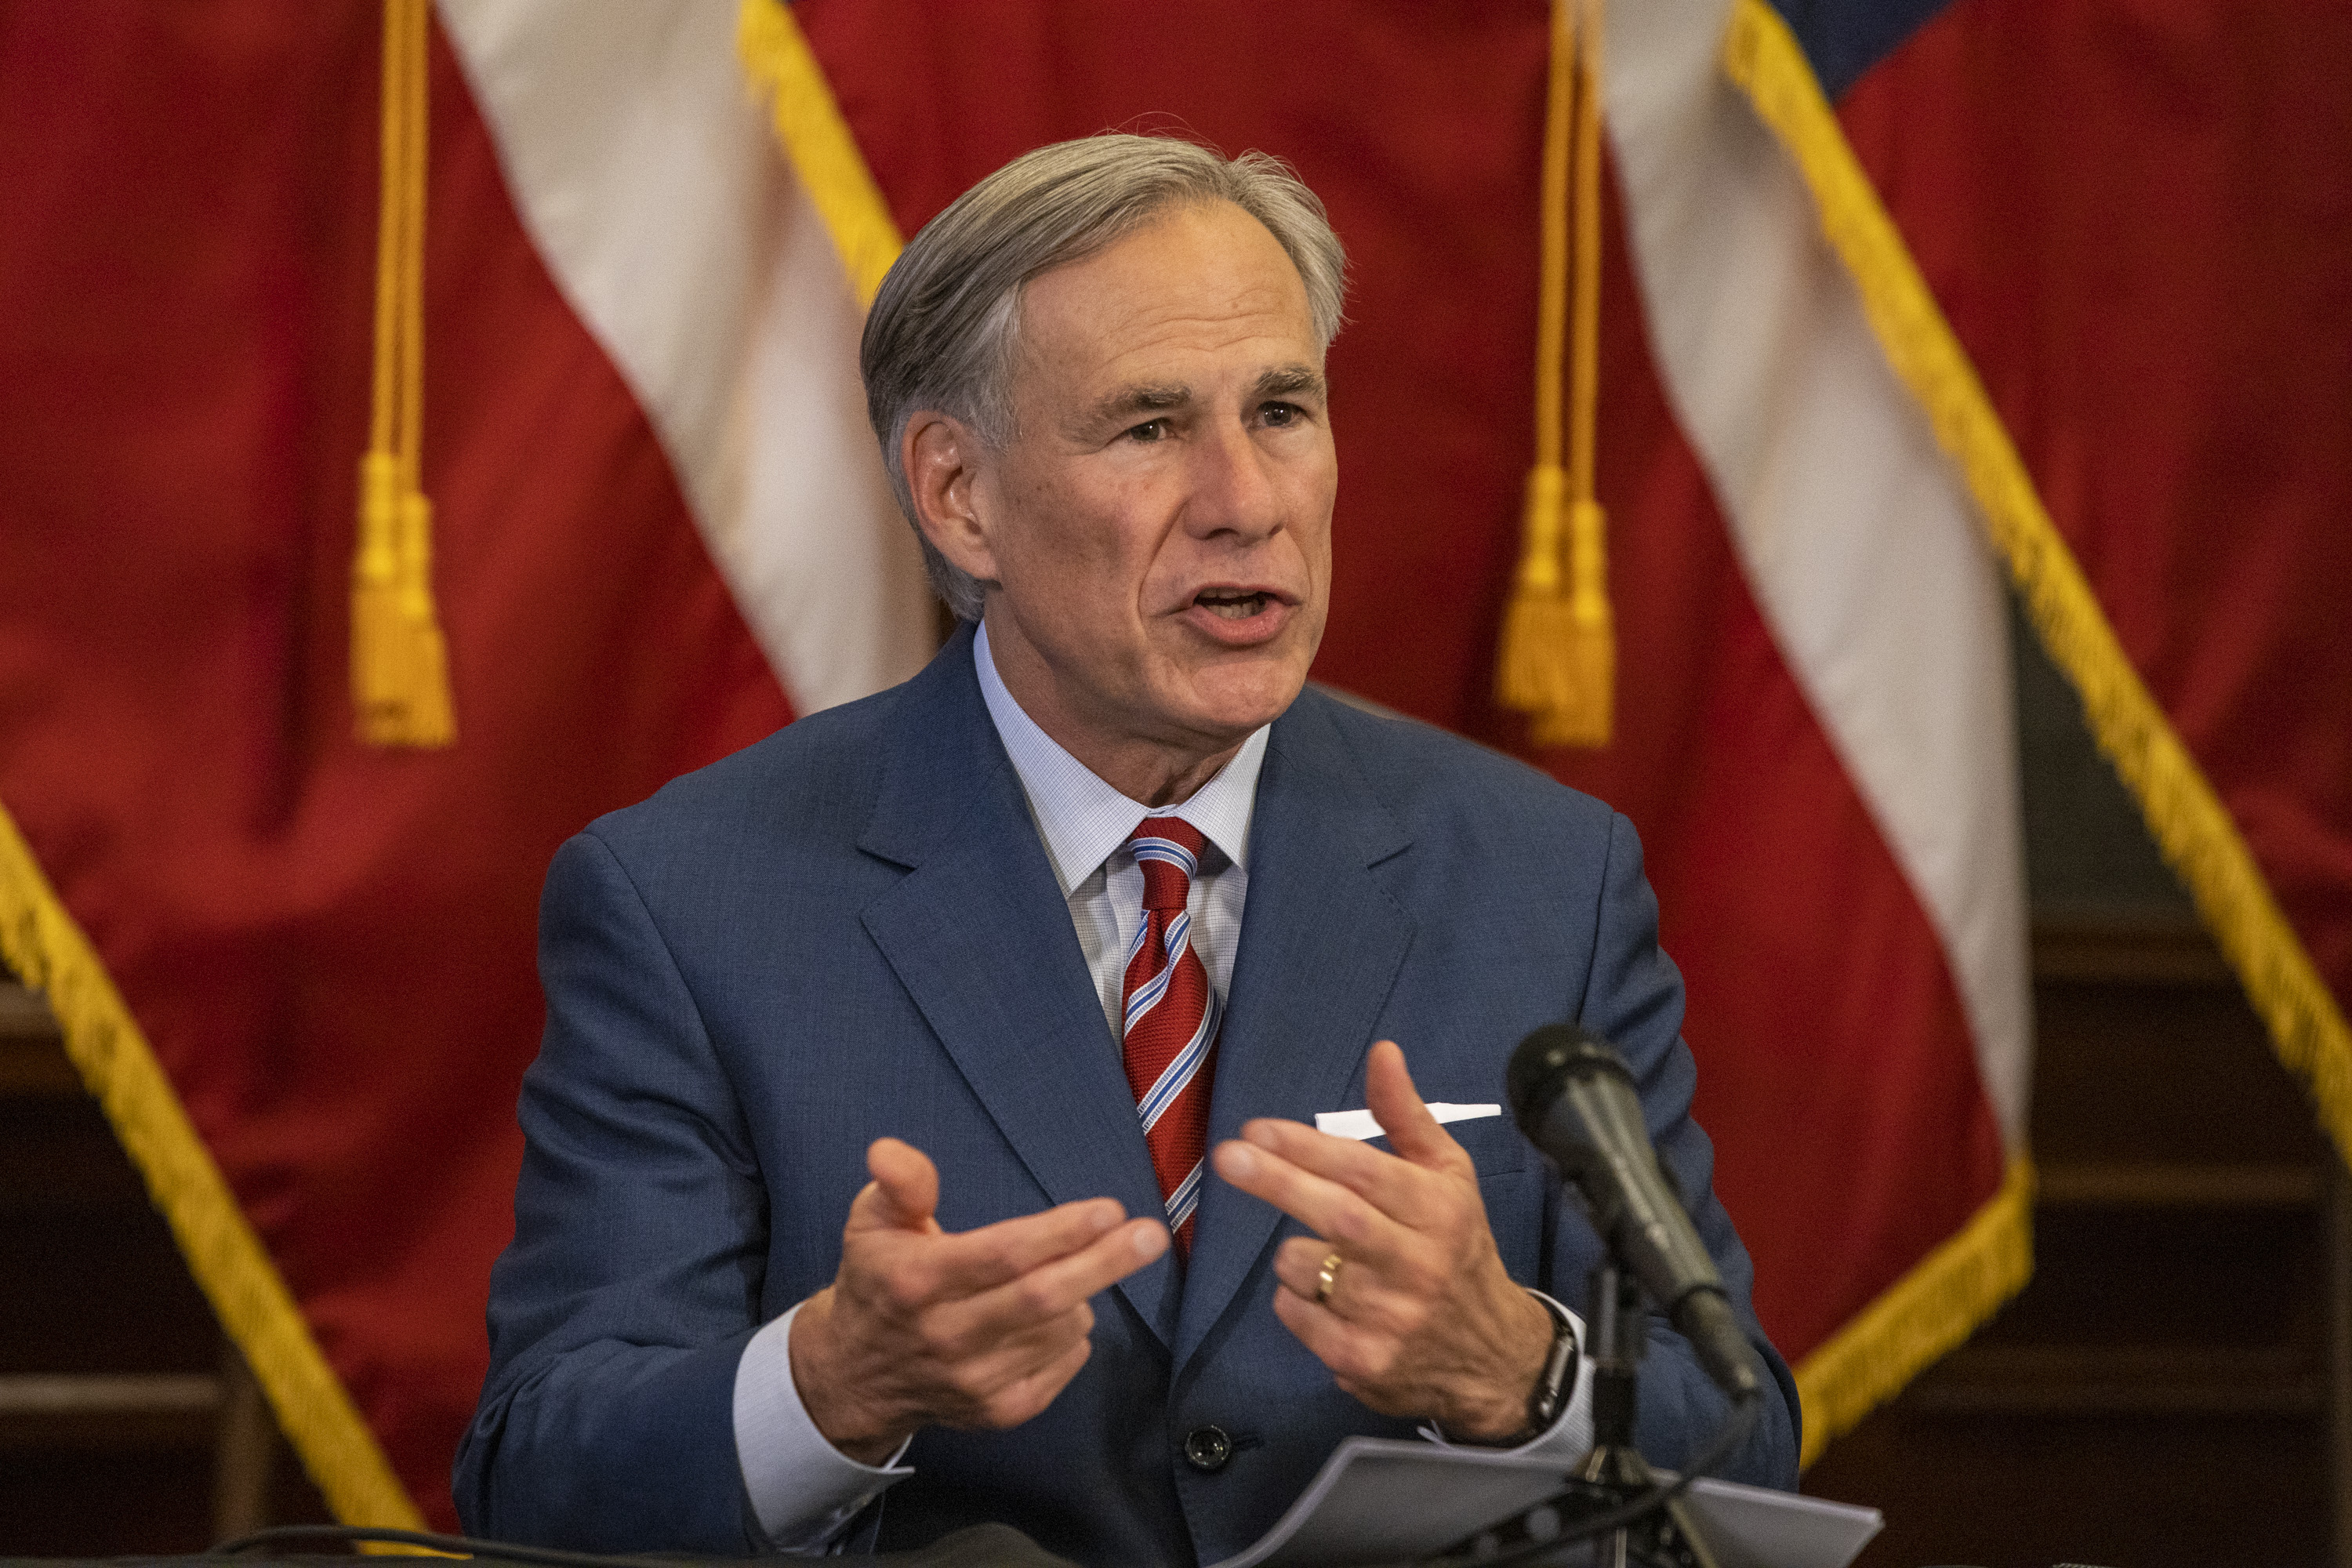 Abbott announces the reopening of more Texas businesses